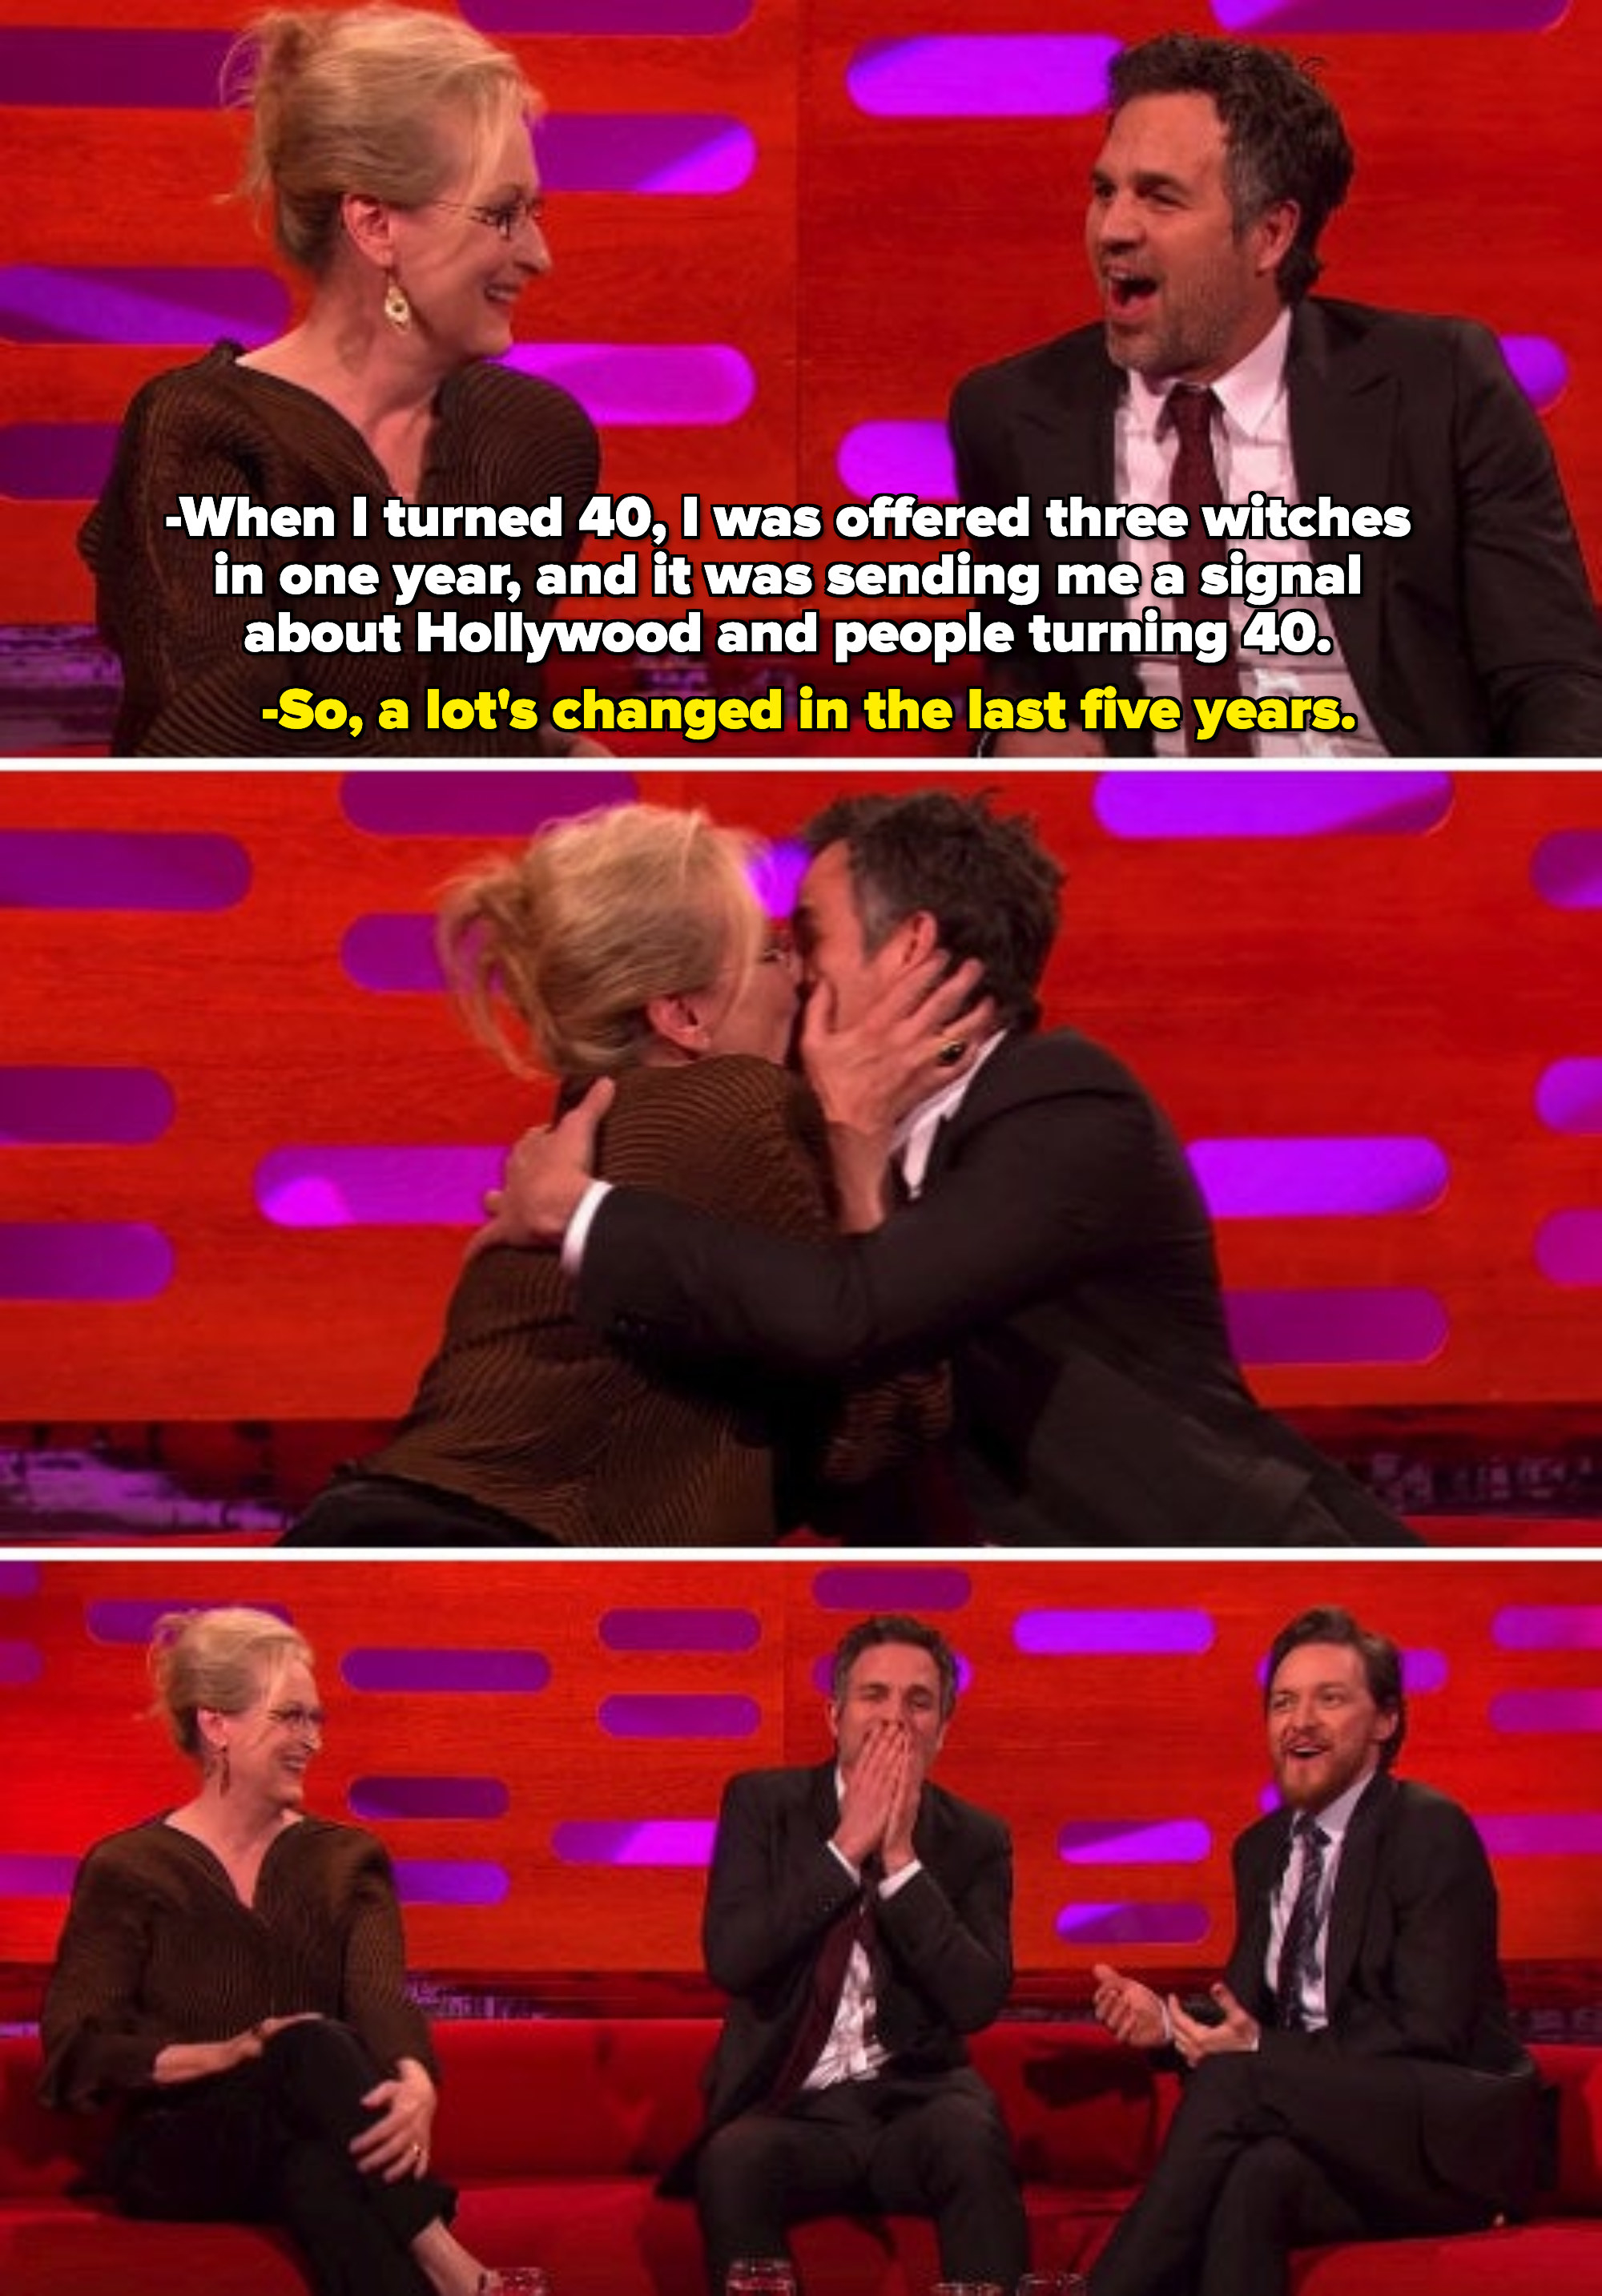 Mark Ruffalo complimenting Meryl Streep about how young she looks